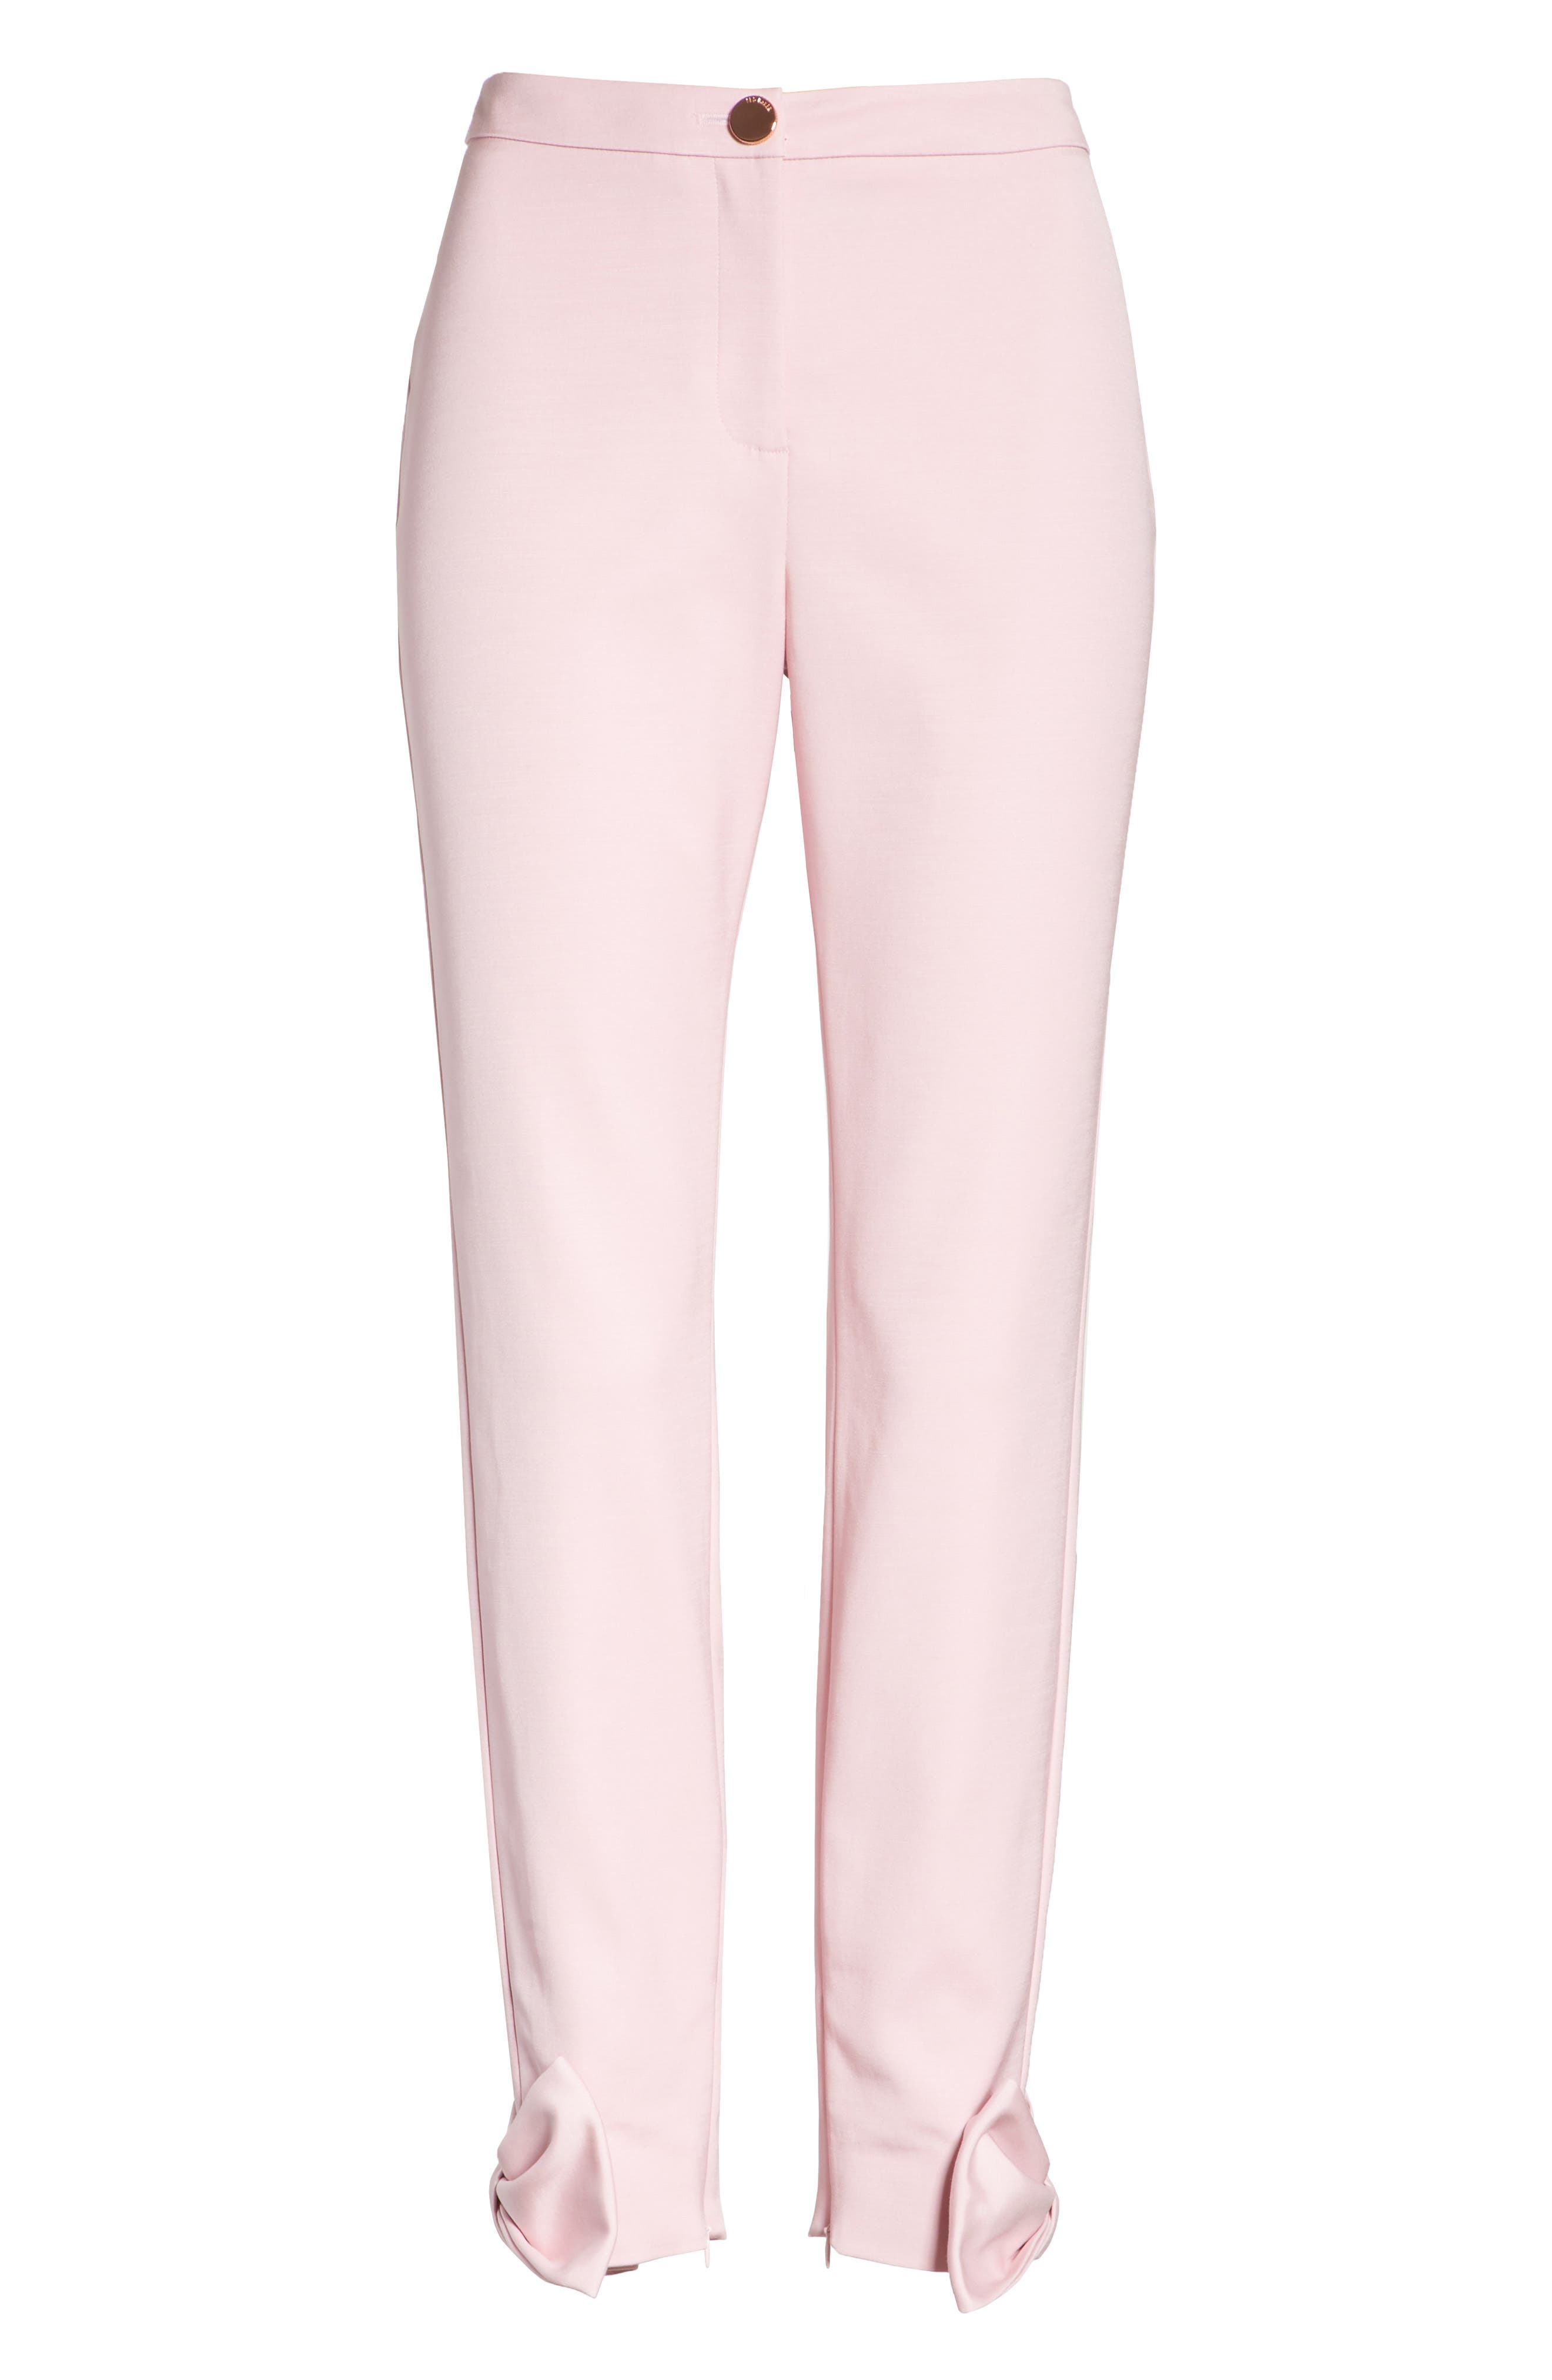 Toplyt Bow Cuff Ankle Pants,                             Alternate thumbnail 6, color,                             Lilac